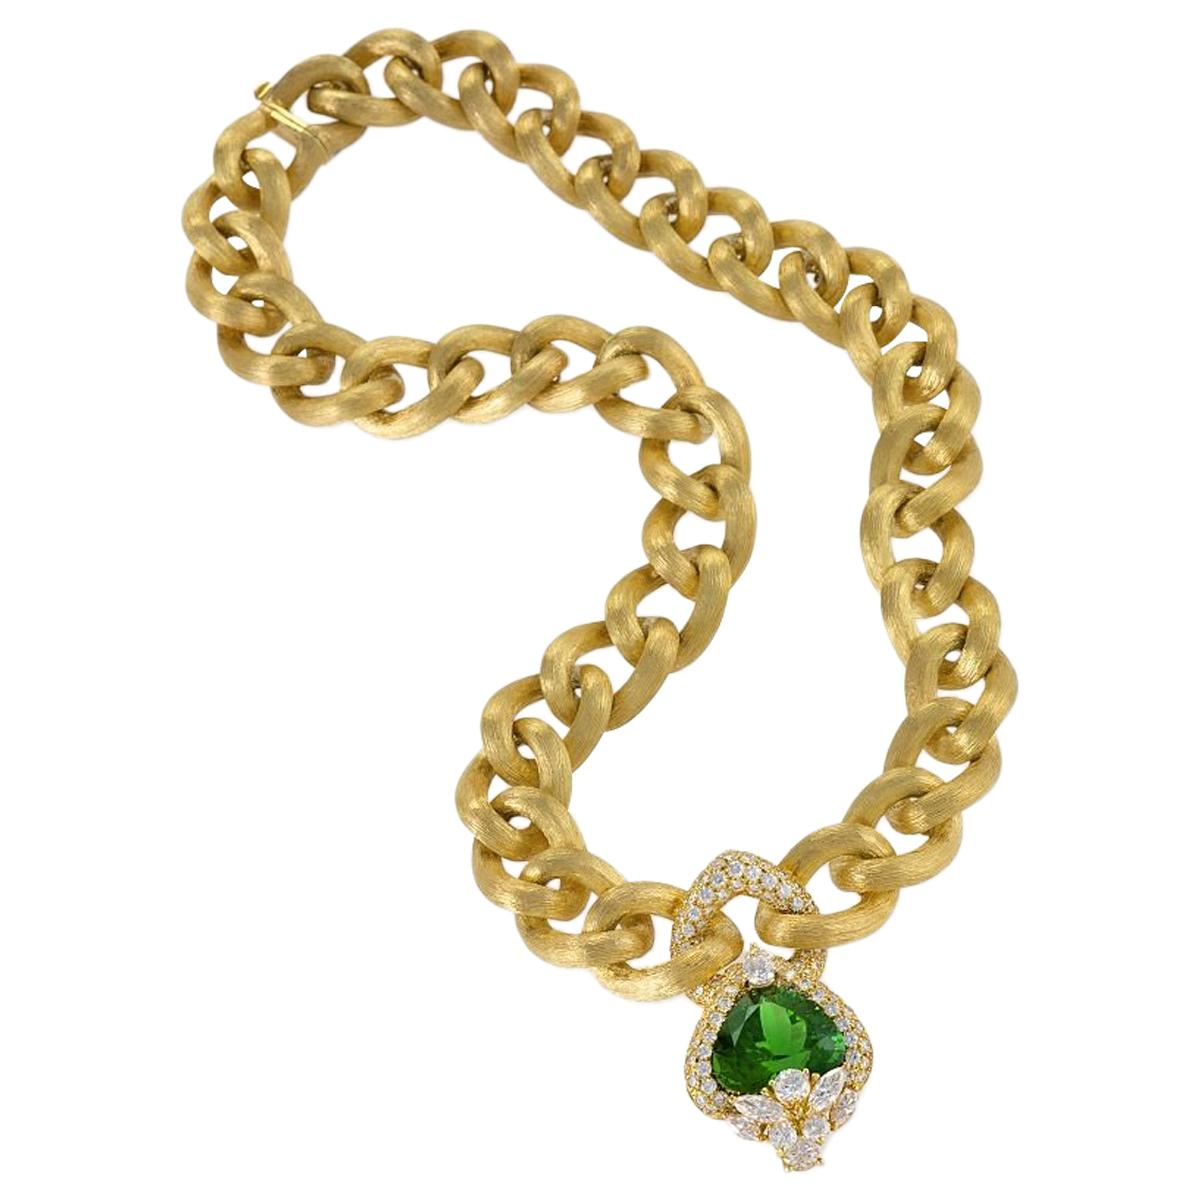 Henry Dunay Gold Necklace with Peridot and Diamonds